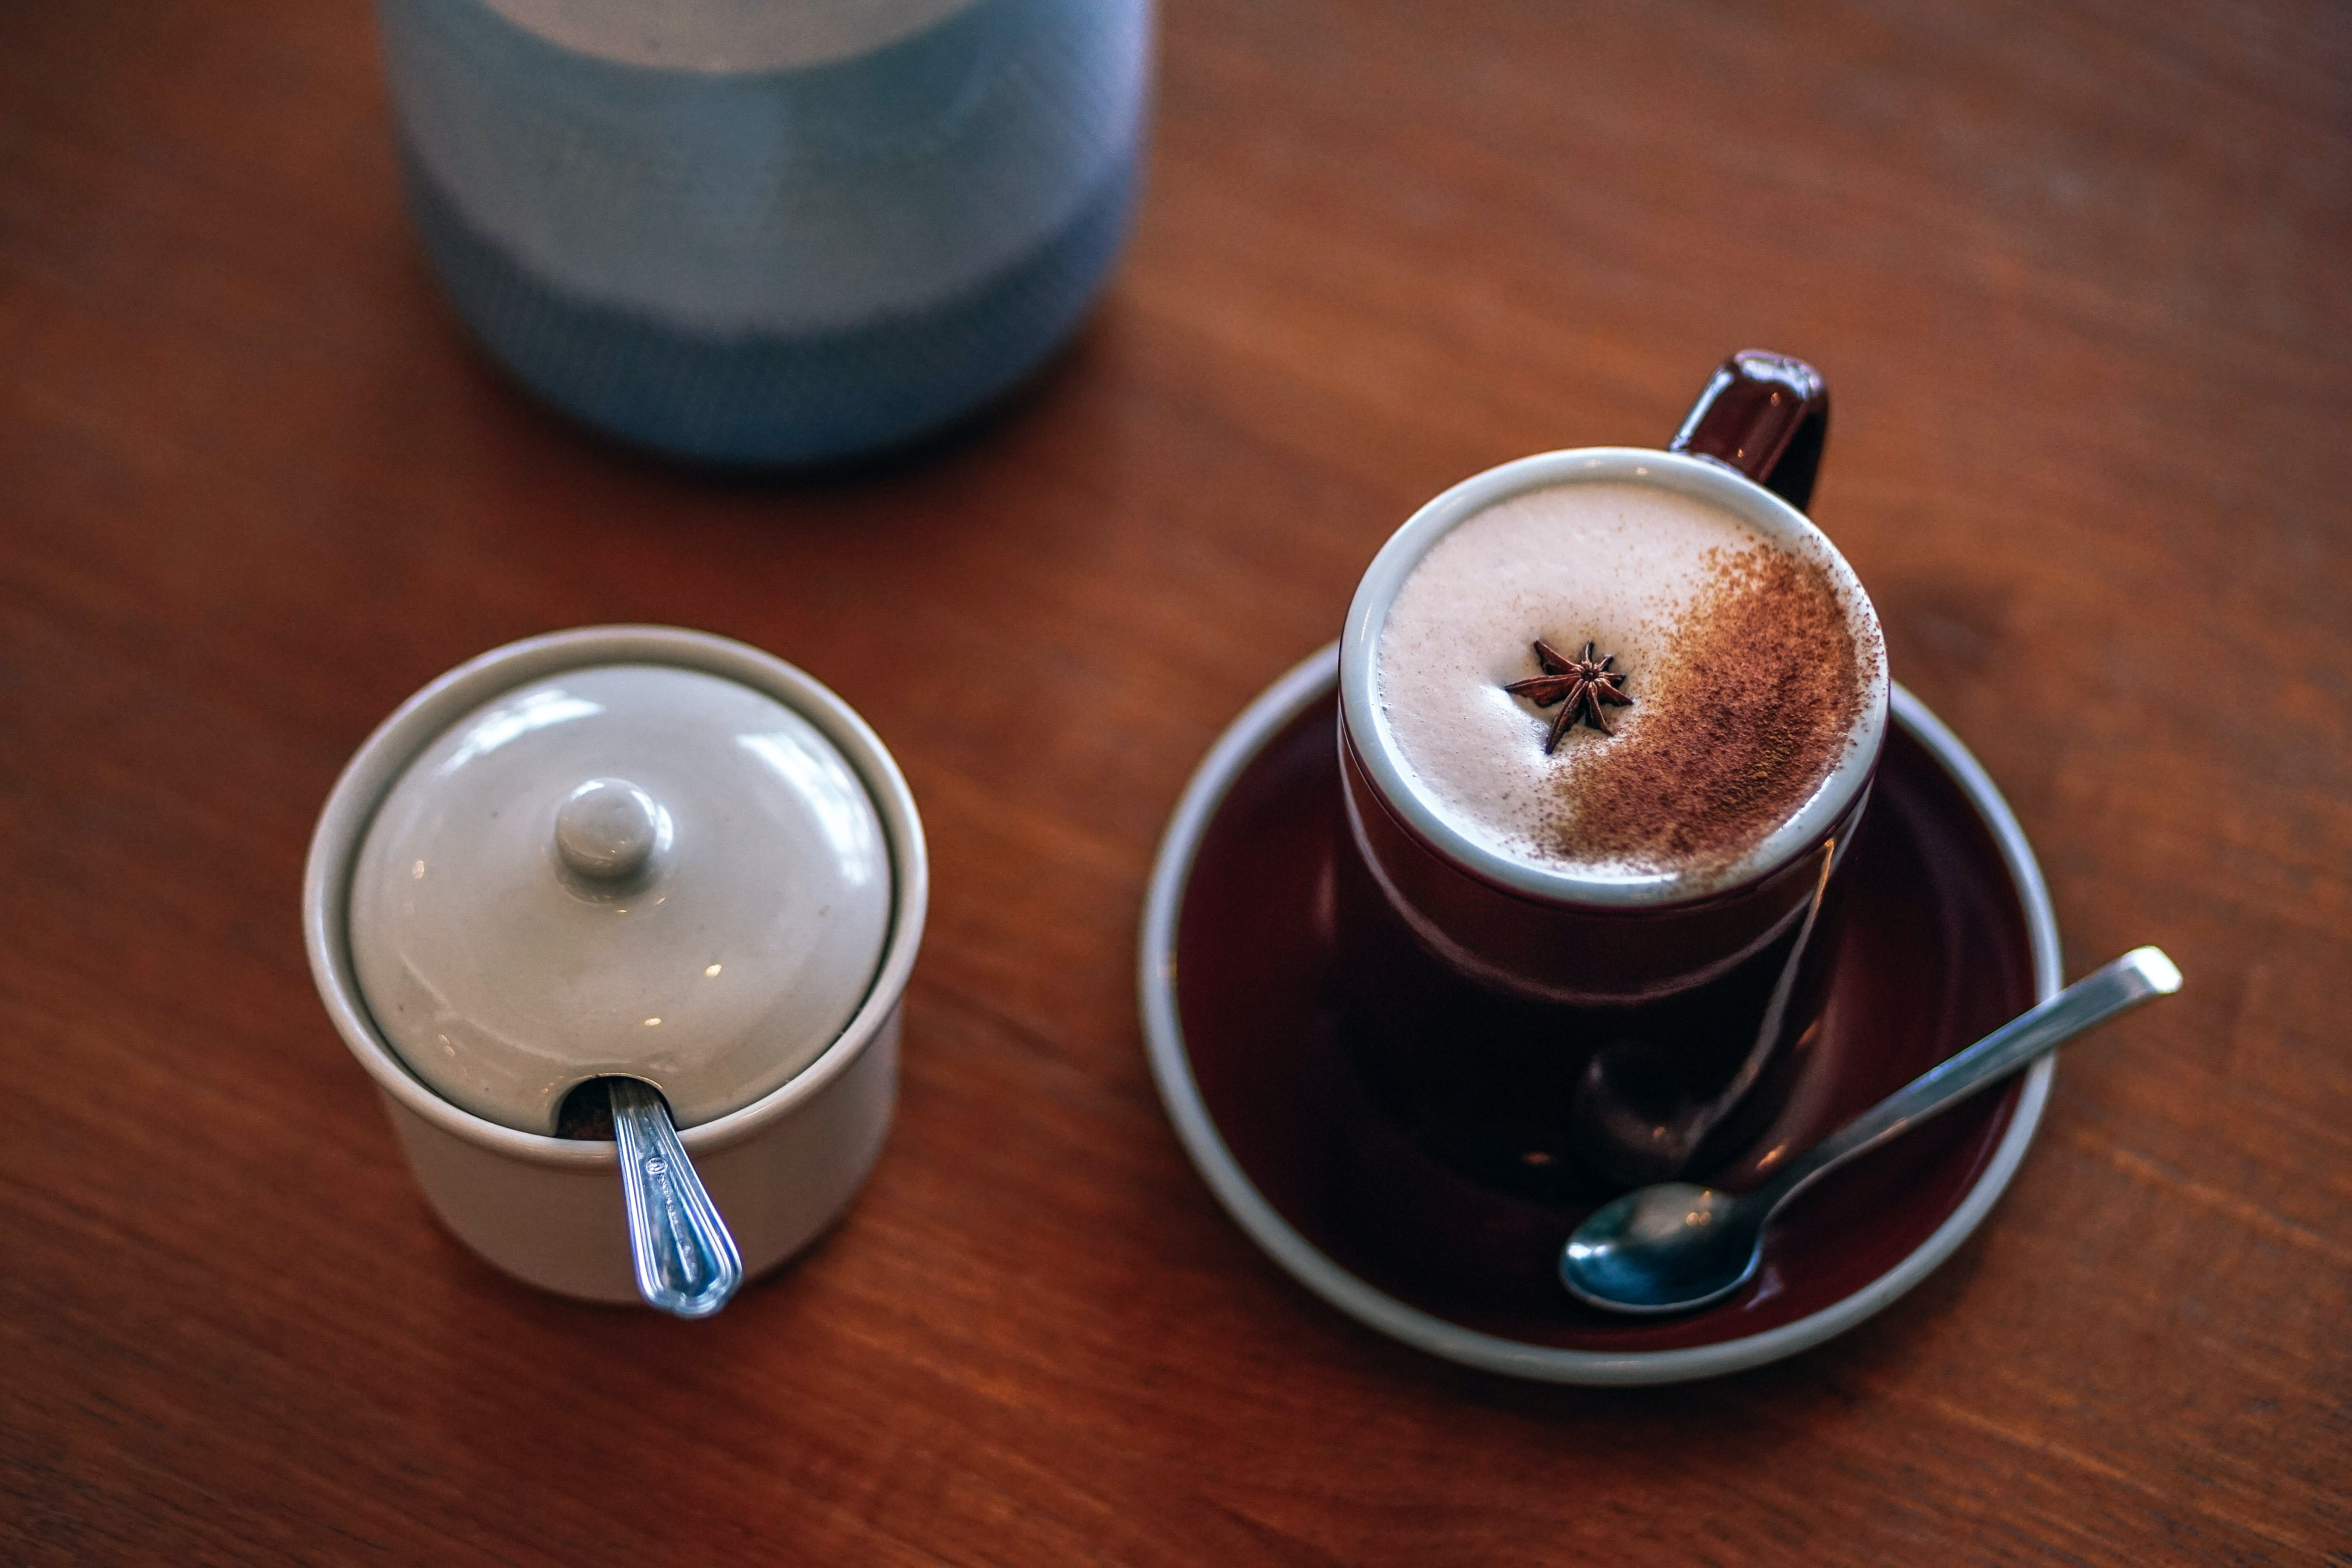 Mug of Latte Beside White Container